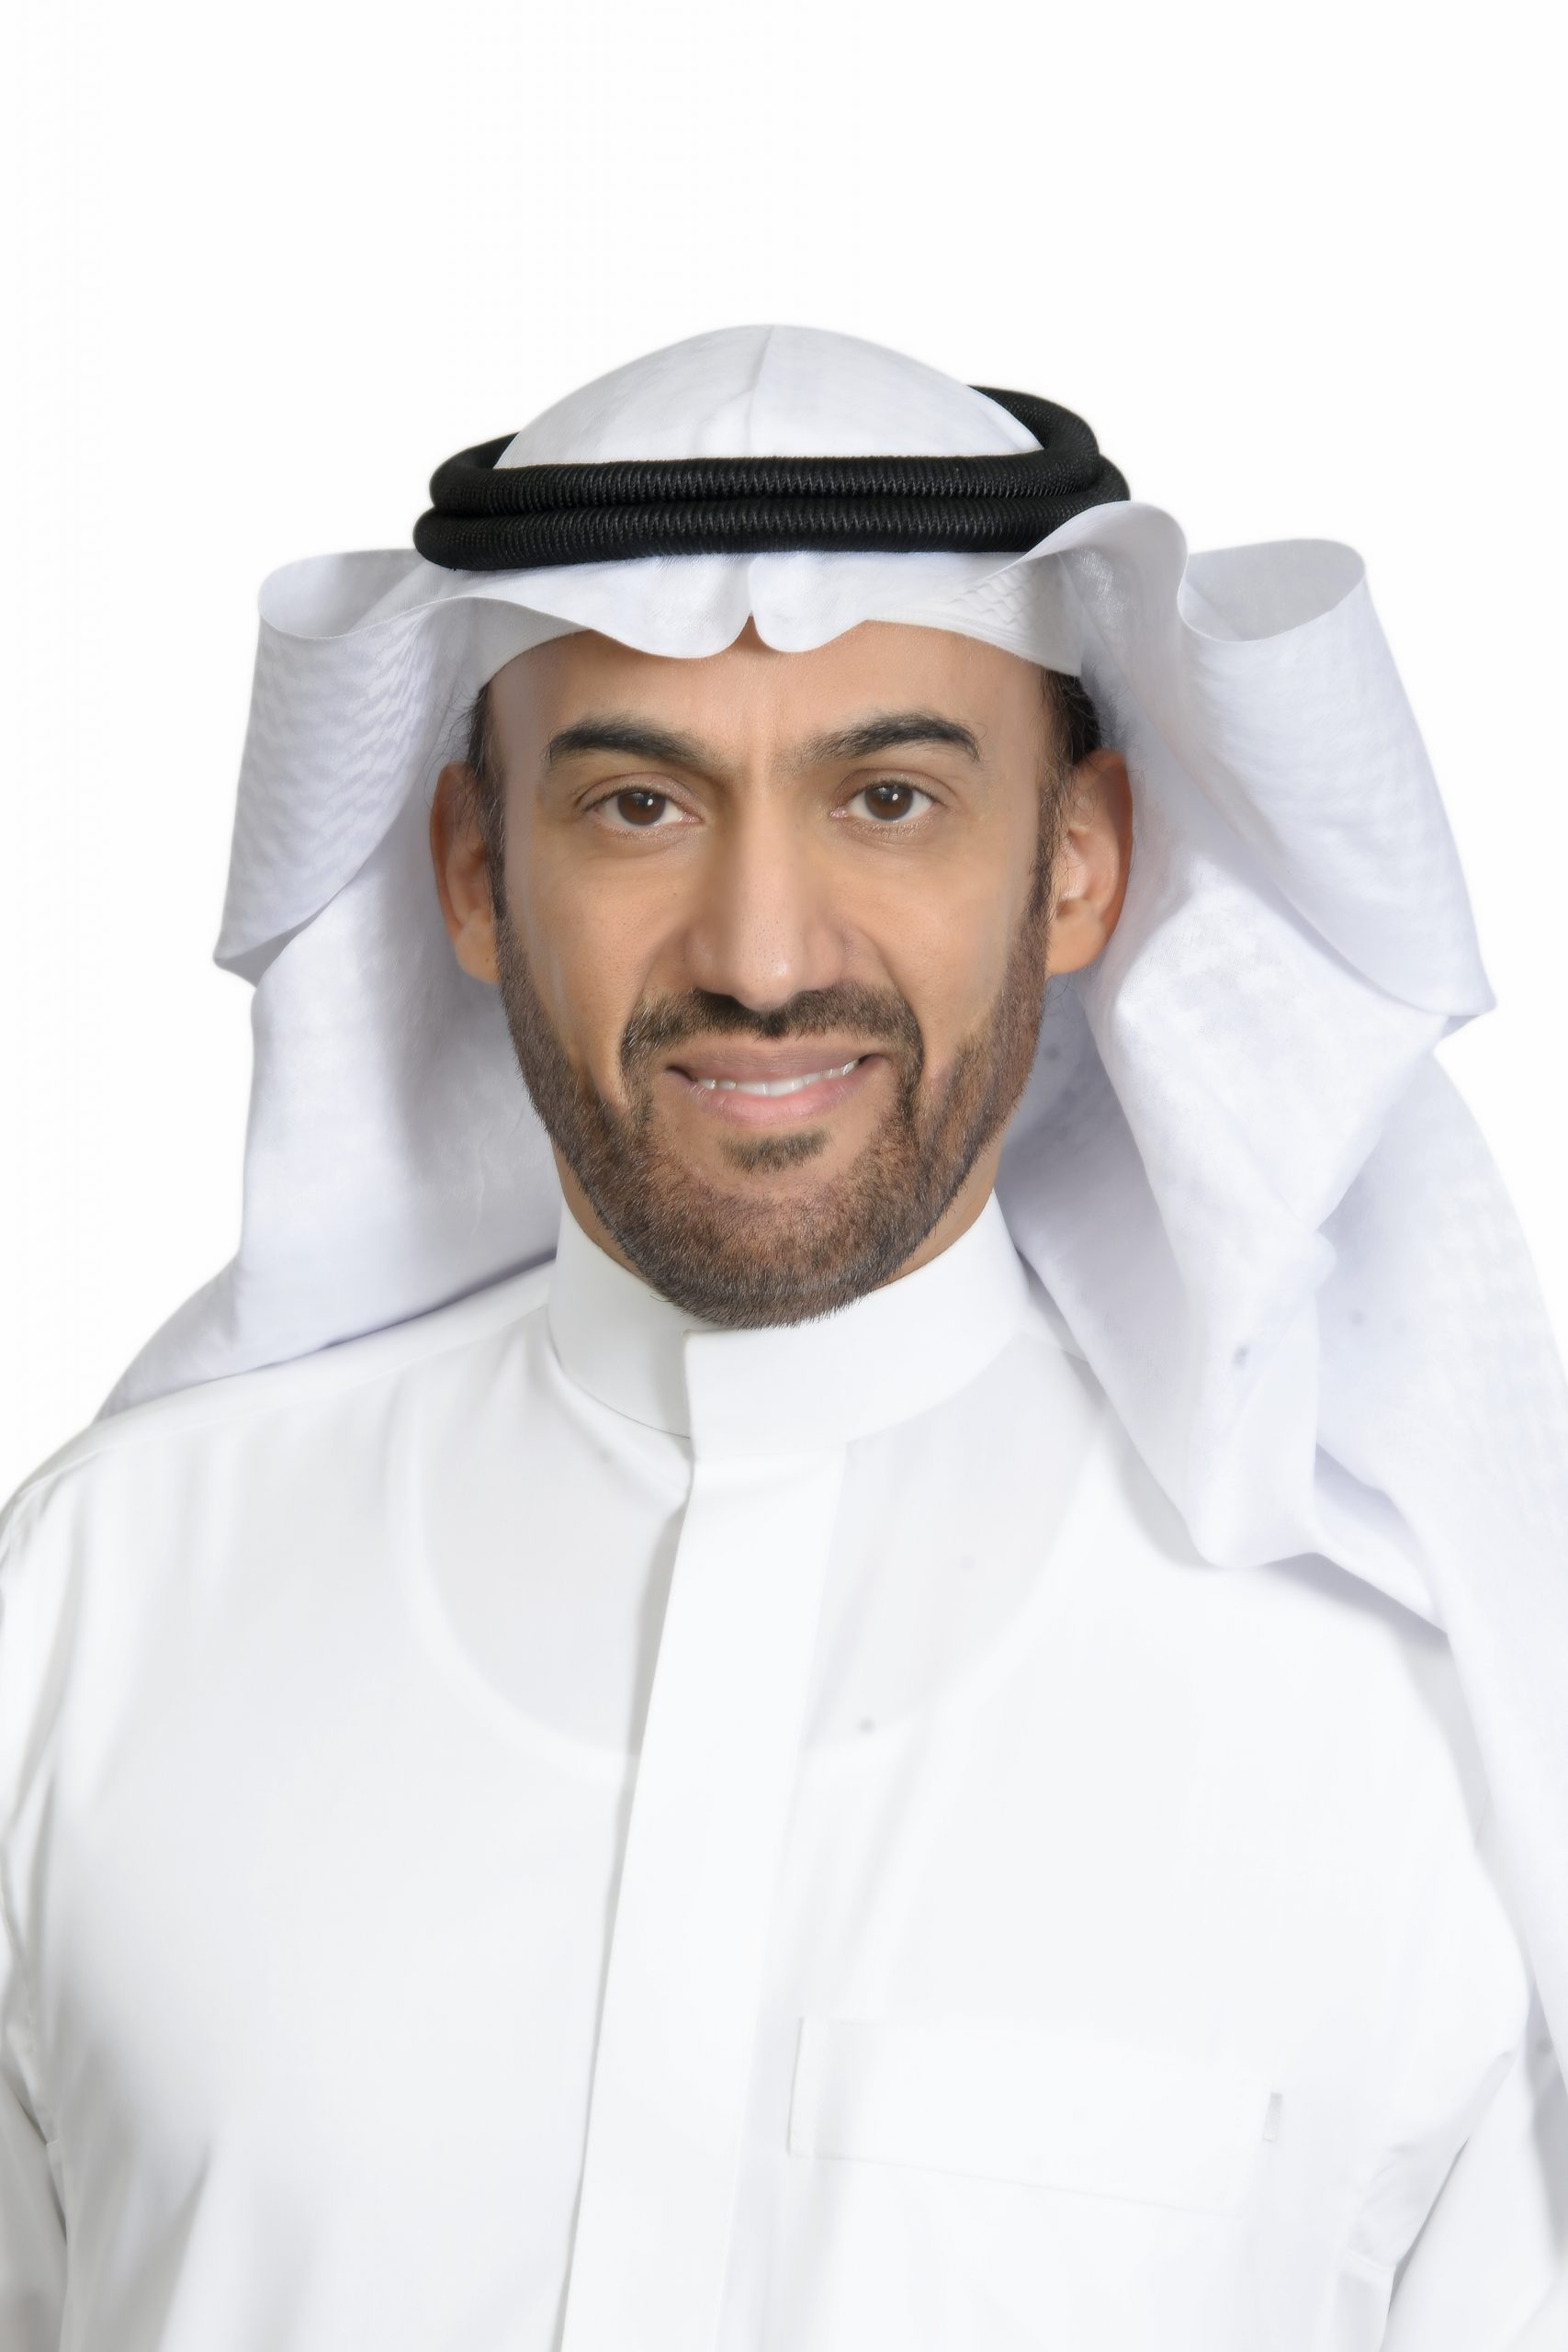 Khaled Alrajhi, Ph.D. Profile Image